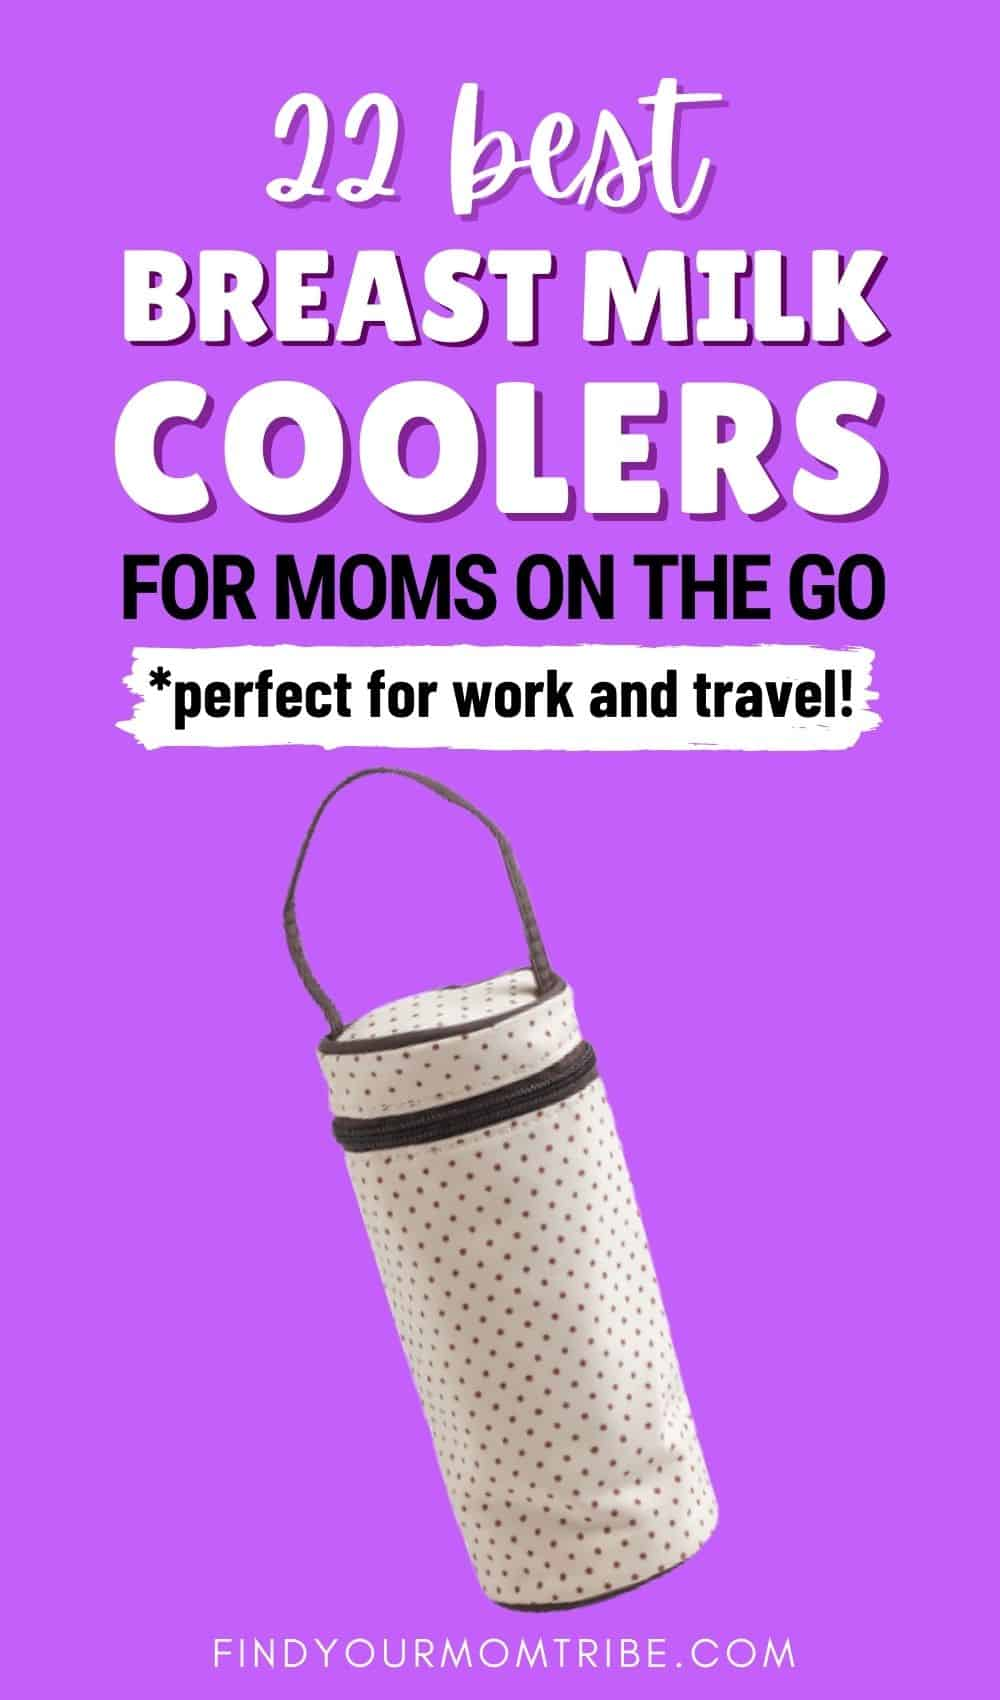 22 Best Breast Milk Coolers For Moms On The Go In 2021